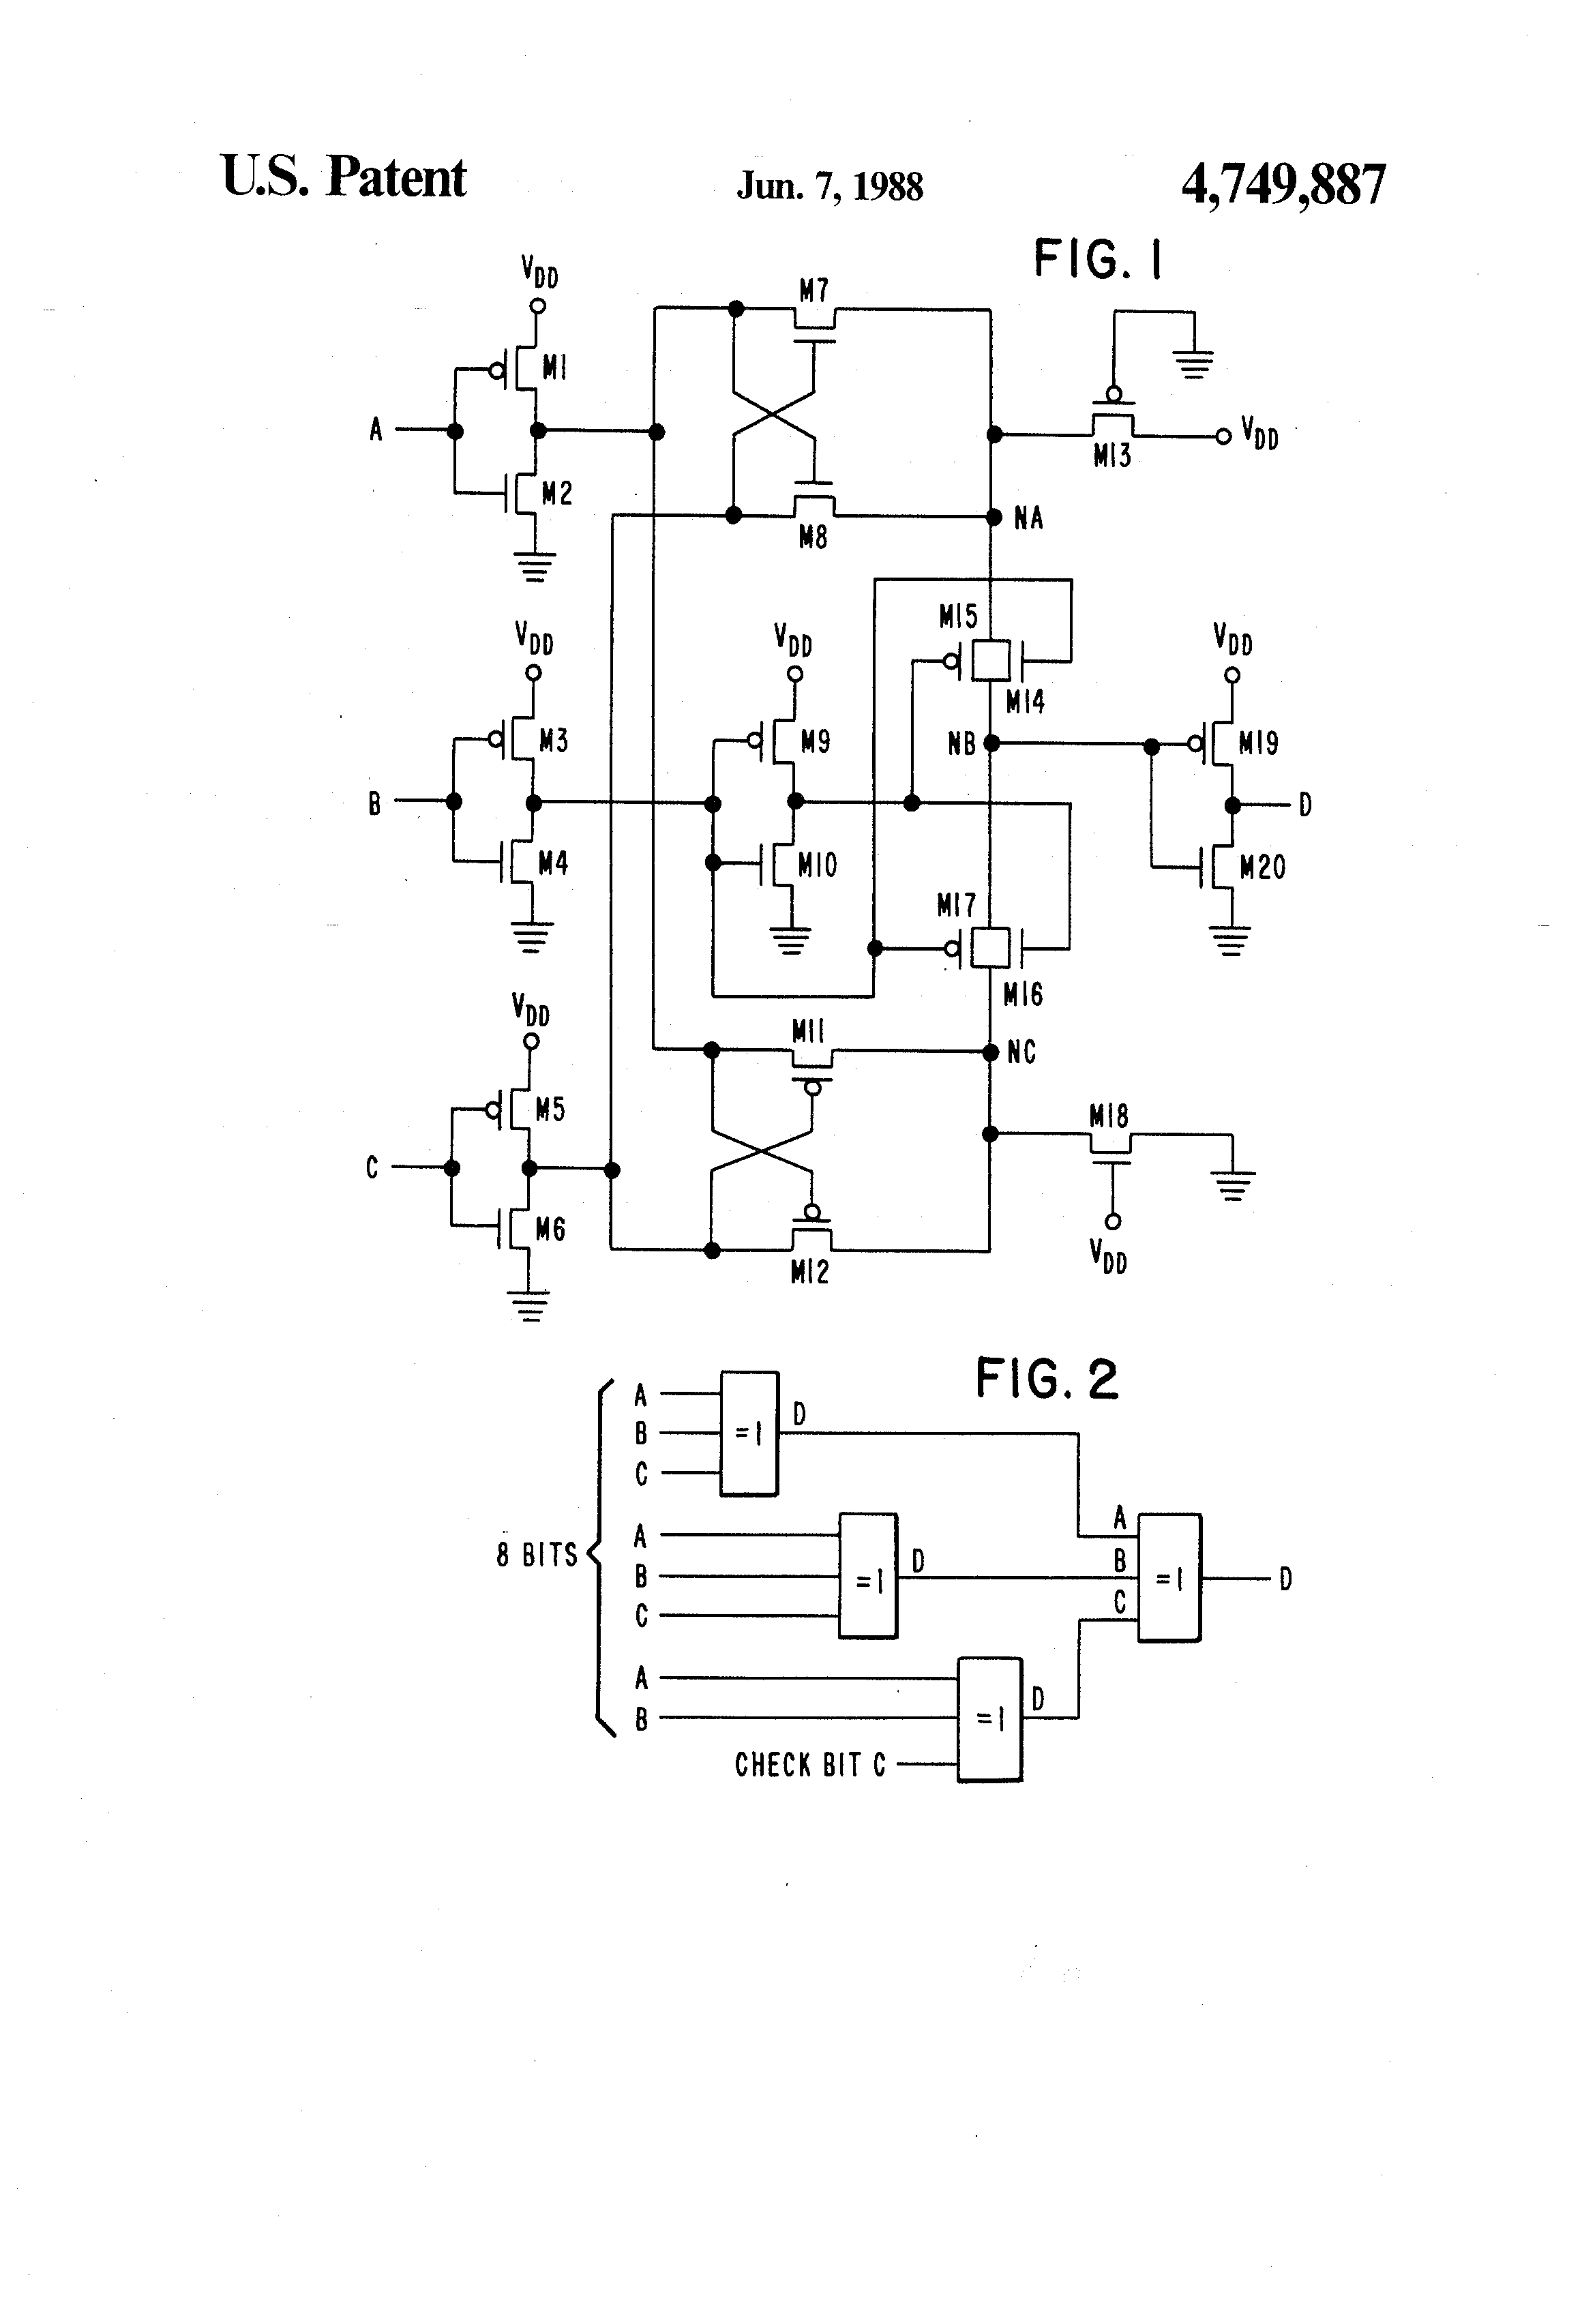 3 Bit Xor Gate Schematic Electrical Drawing Wiring Diagram Nand Circuit Patente Us4749887 Input Exclusive Or Google Patentes Rh Tl 6 Transistor Level Of Design